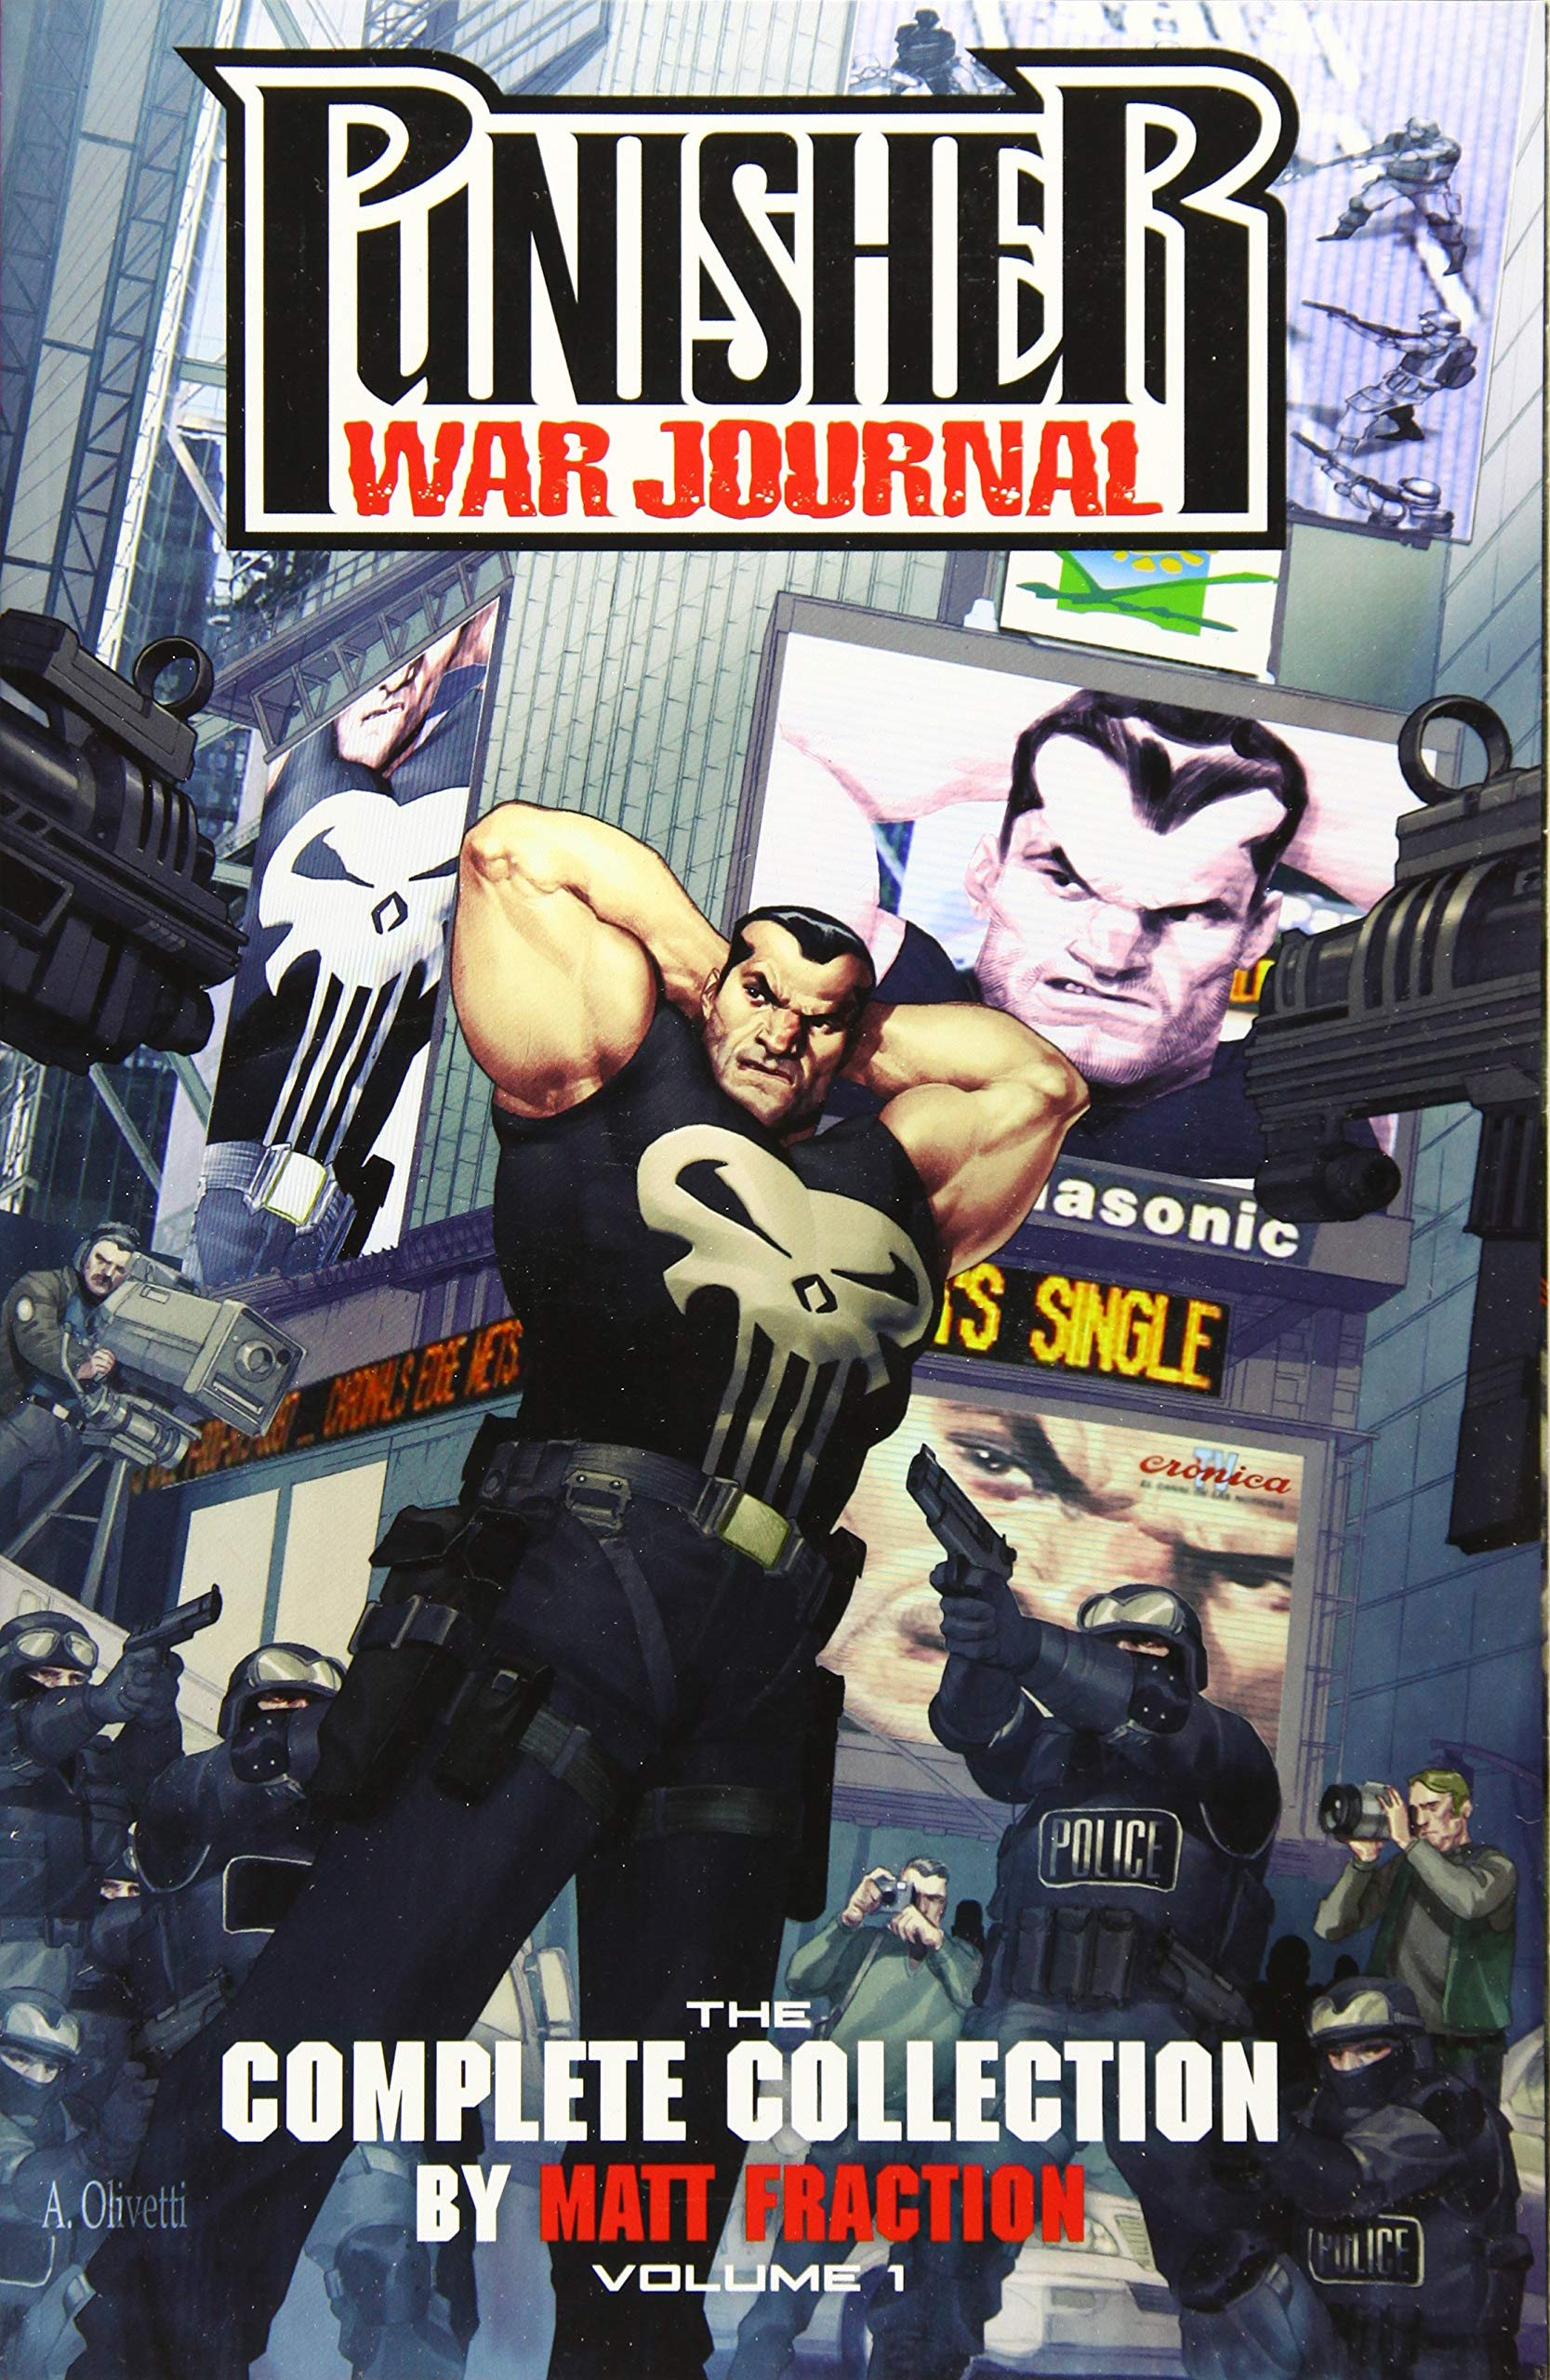 Punisher War Journal 1 - Punisher War Journal by Matt Fraction: The Complete Collection Vol. 1